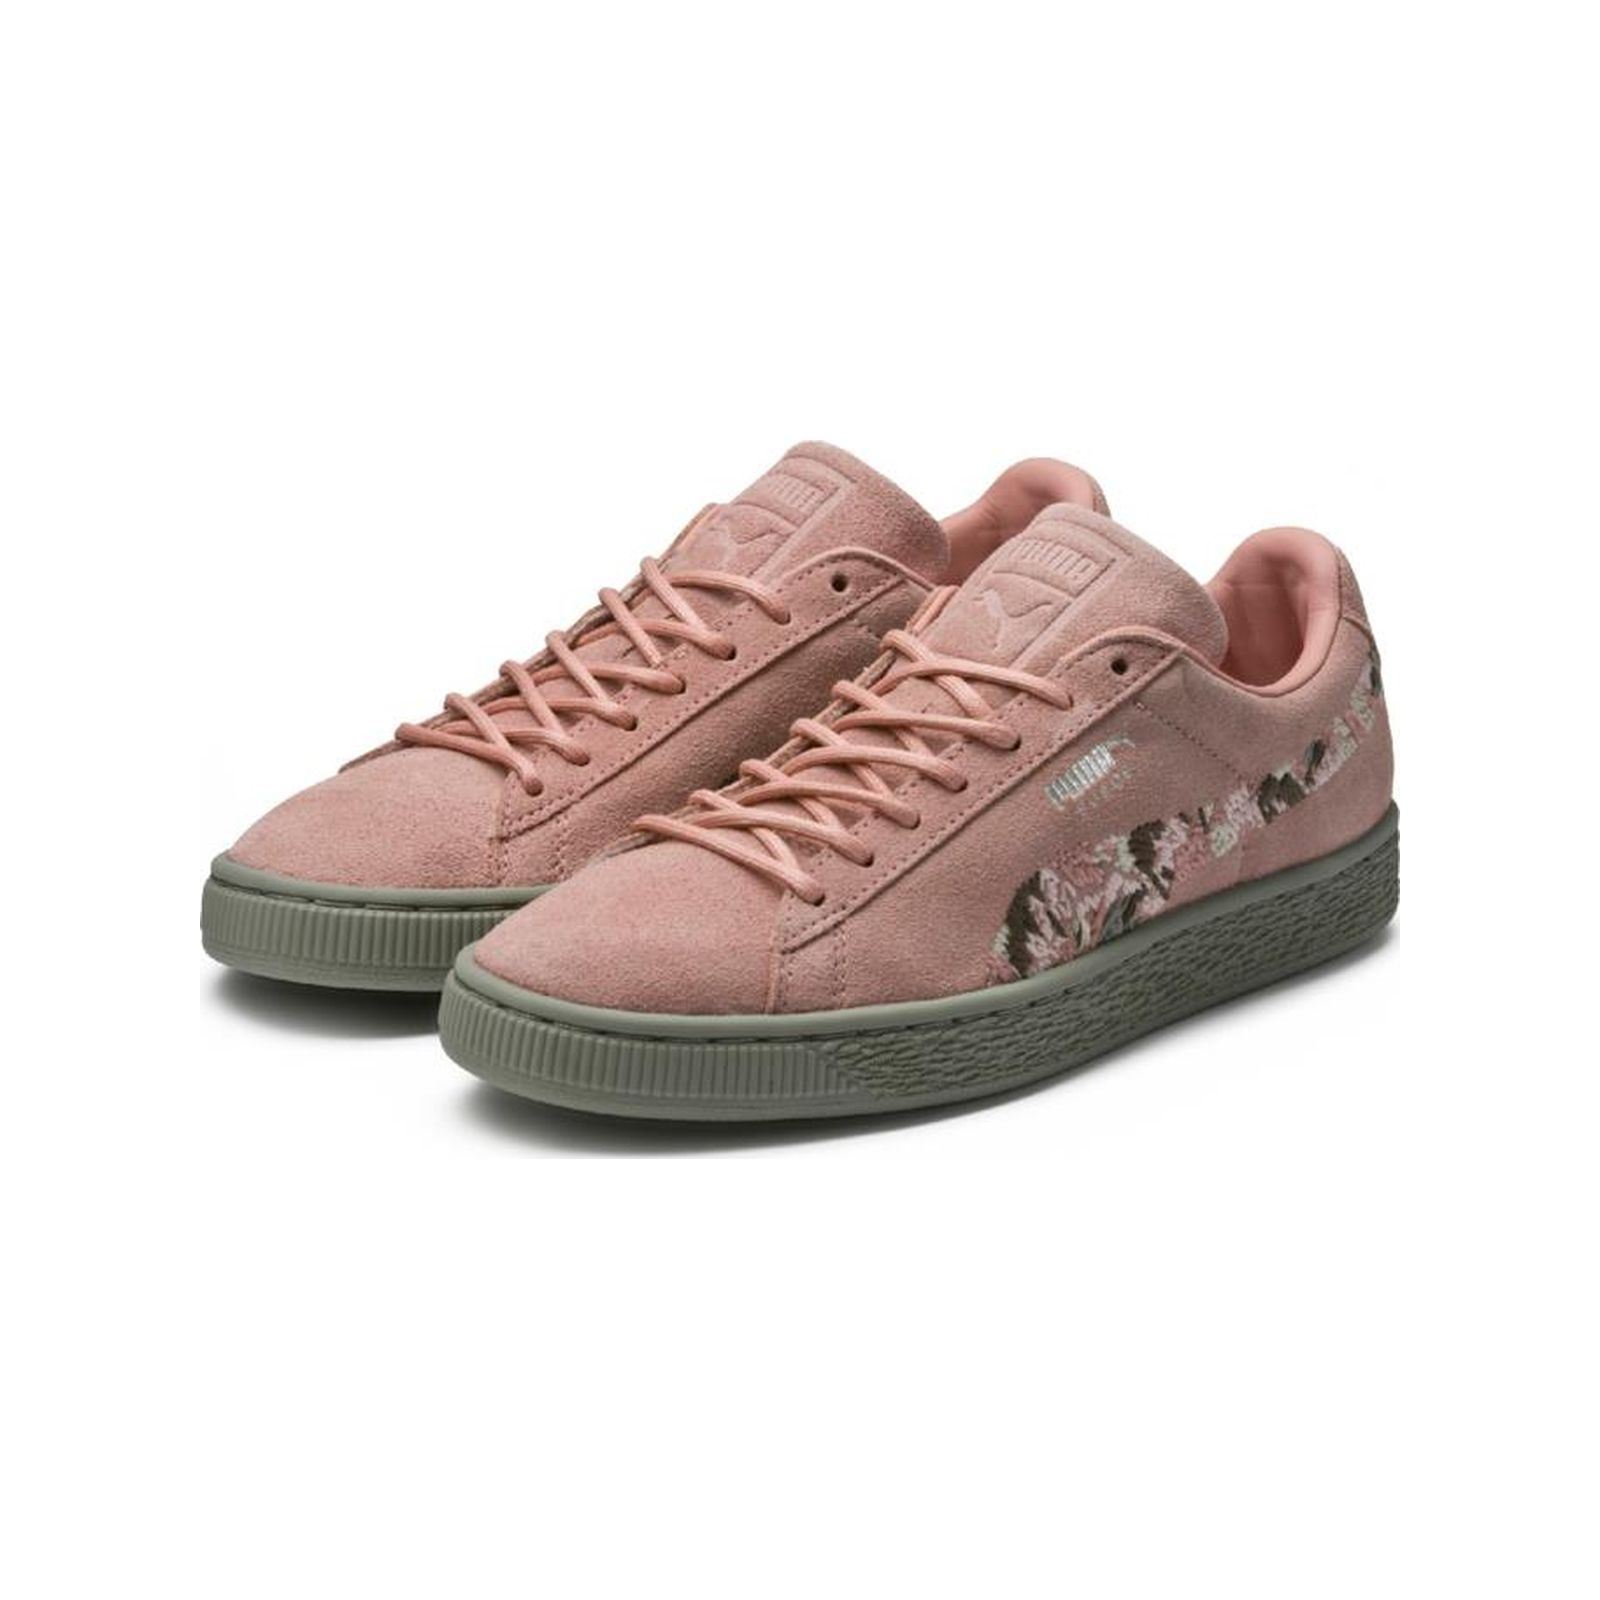 Puma Suede Irreg - Baskets en cuir - rose  Baskets